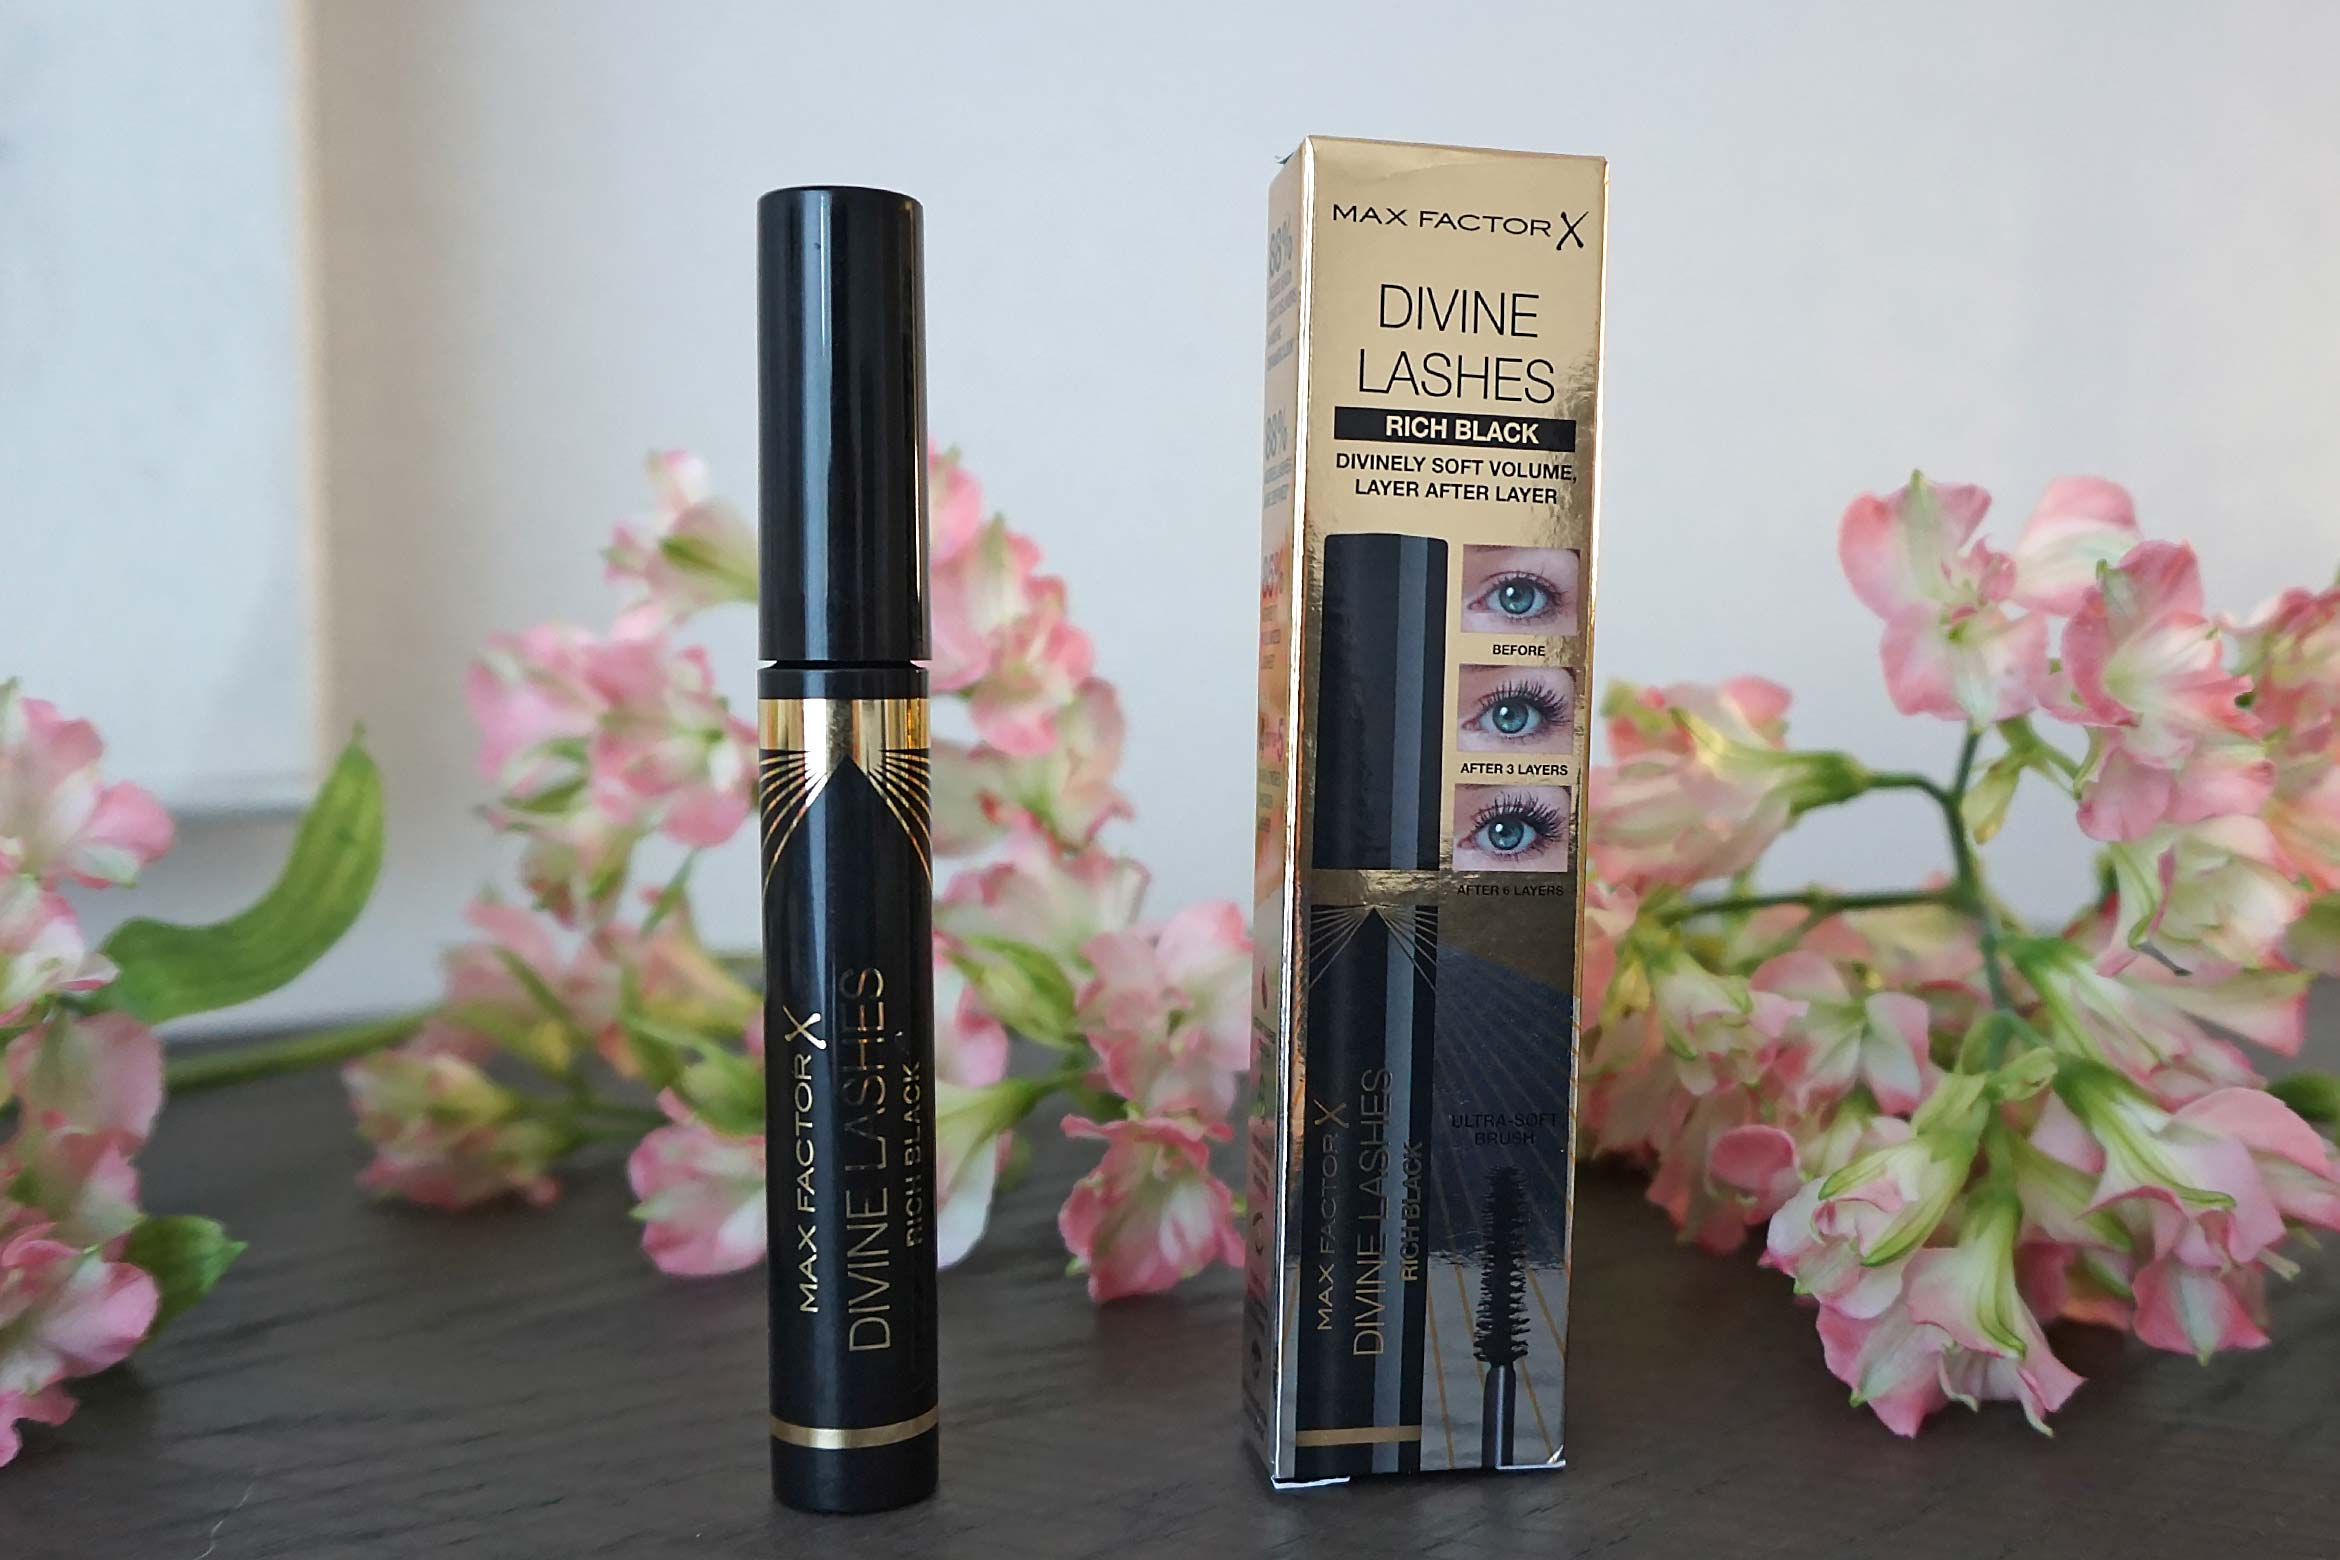 max factor divine lashes mascara review-2